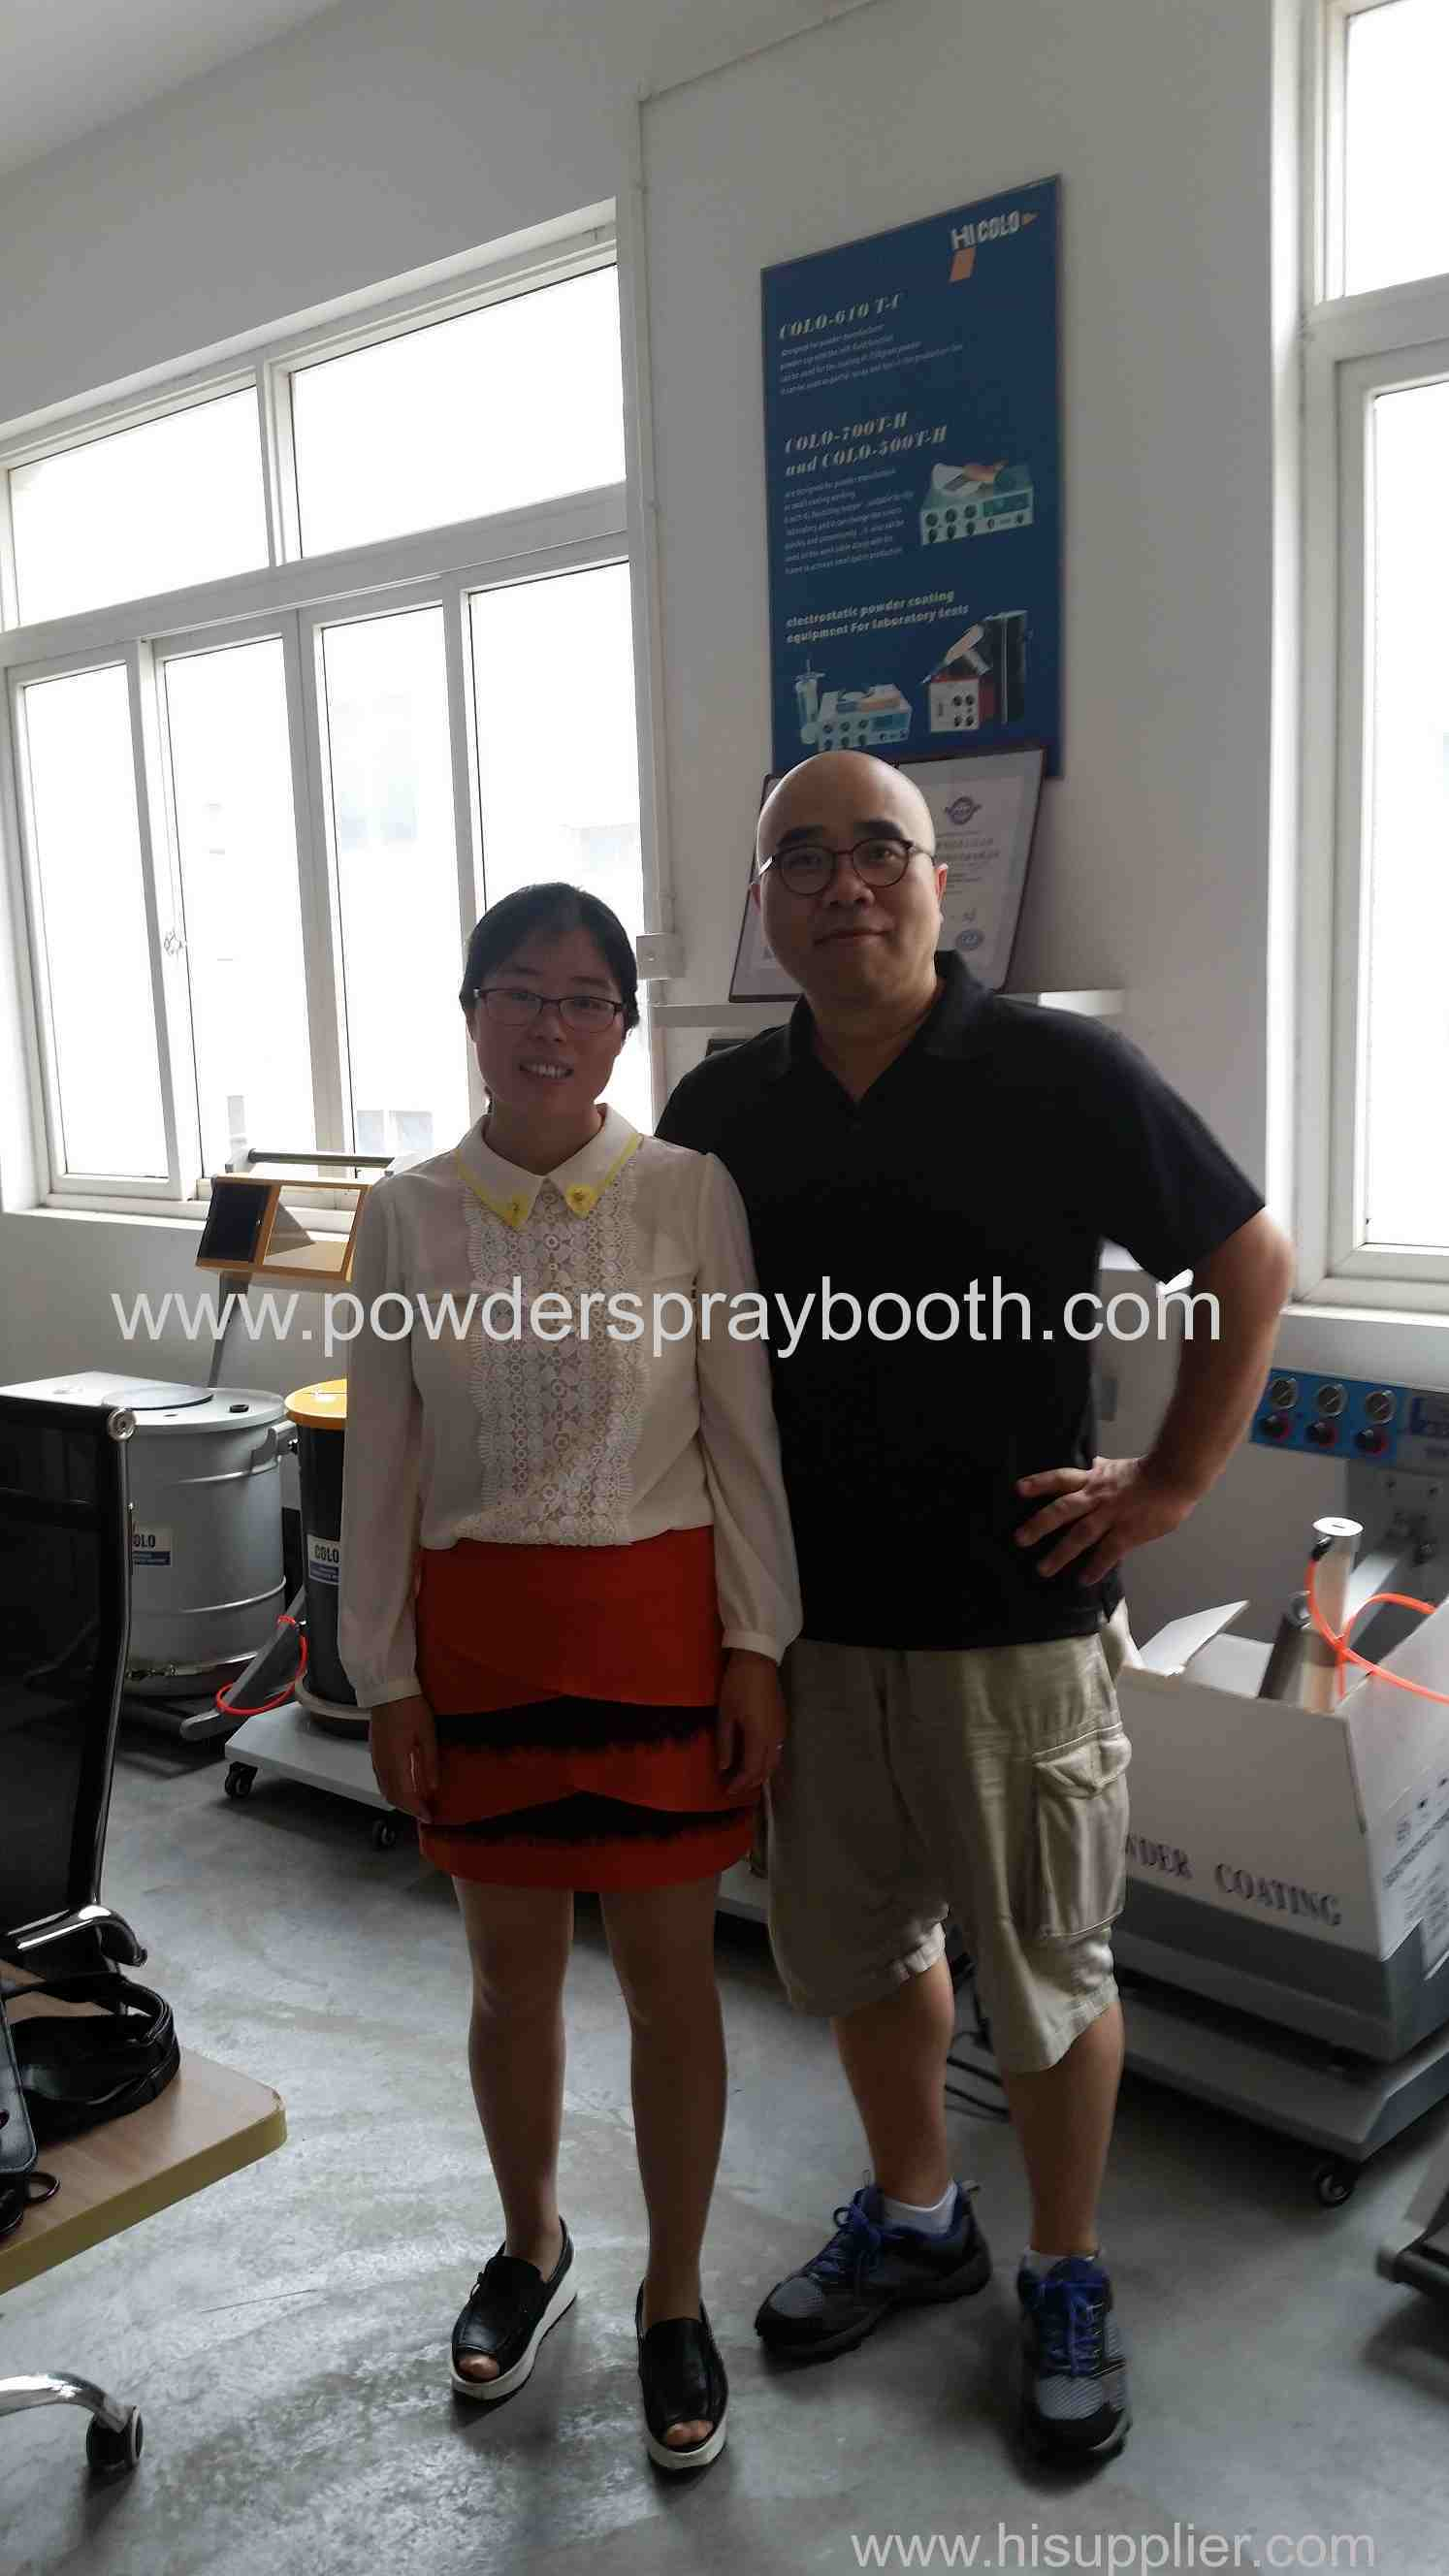 USA customer place order for powder spare parts